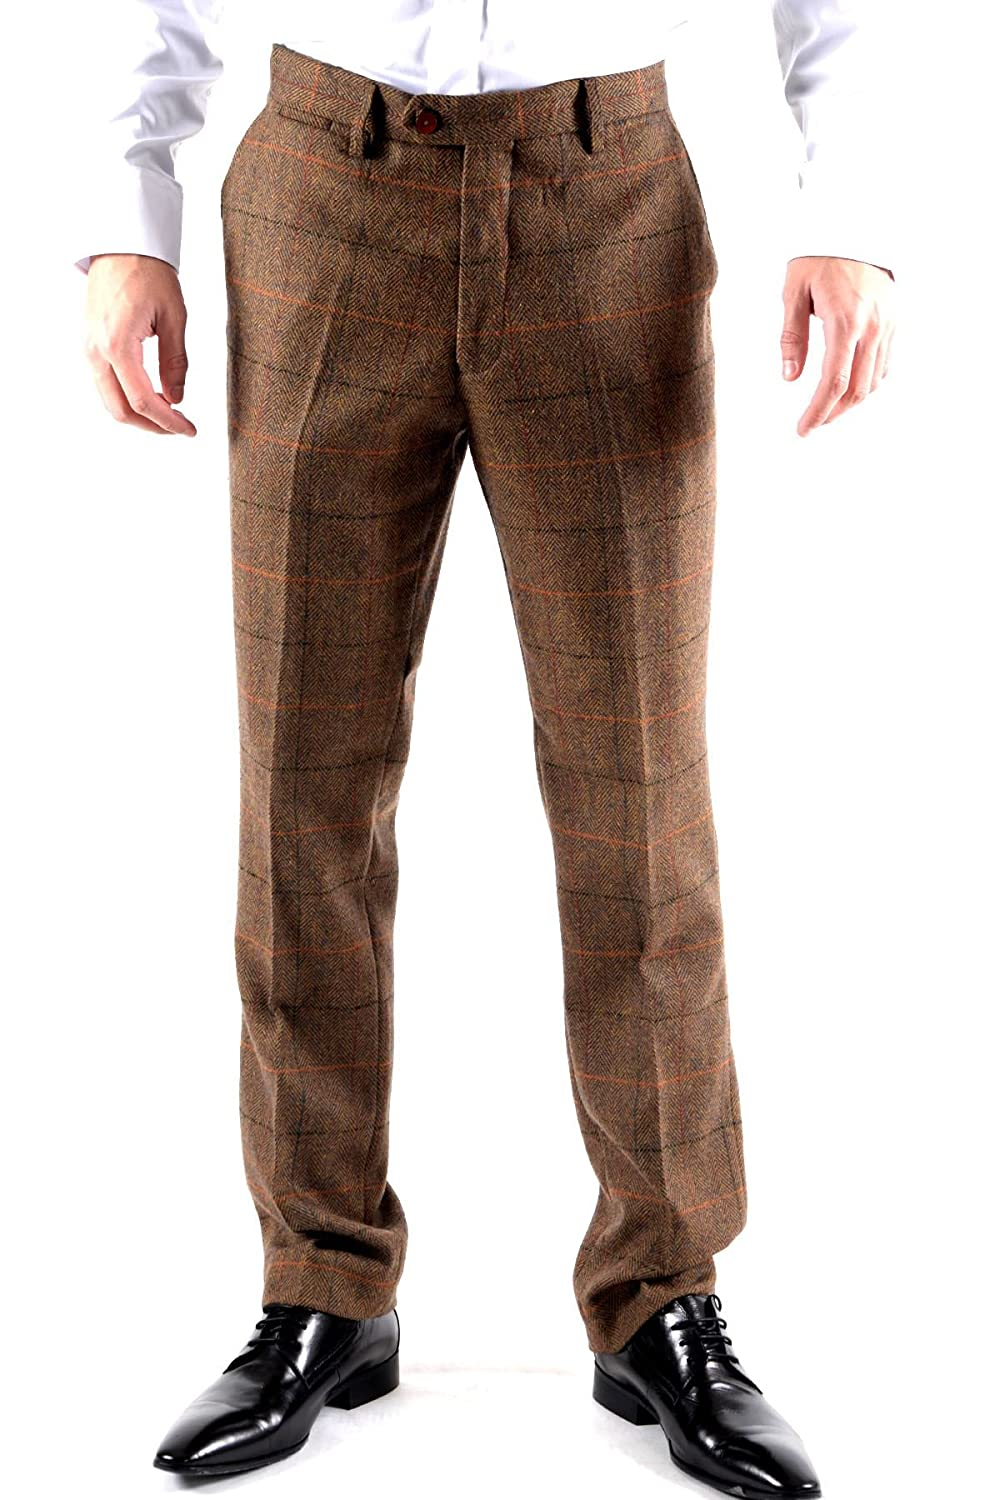 1920s Style Women's Pants, Trousers, Knickers Marc Darcy Mens Designer Tweed Tan Multi Tonal Check Print Tailored Trousers Size 28-46 Available £46.99 AT vintagedancer.com